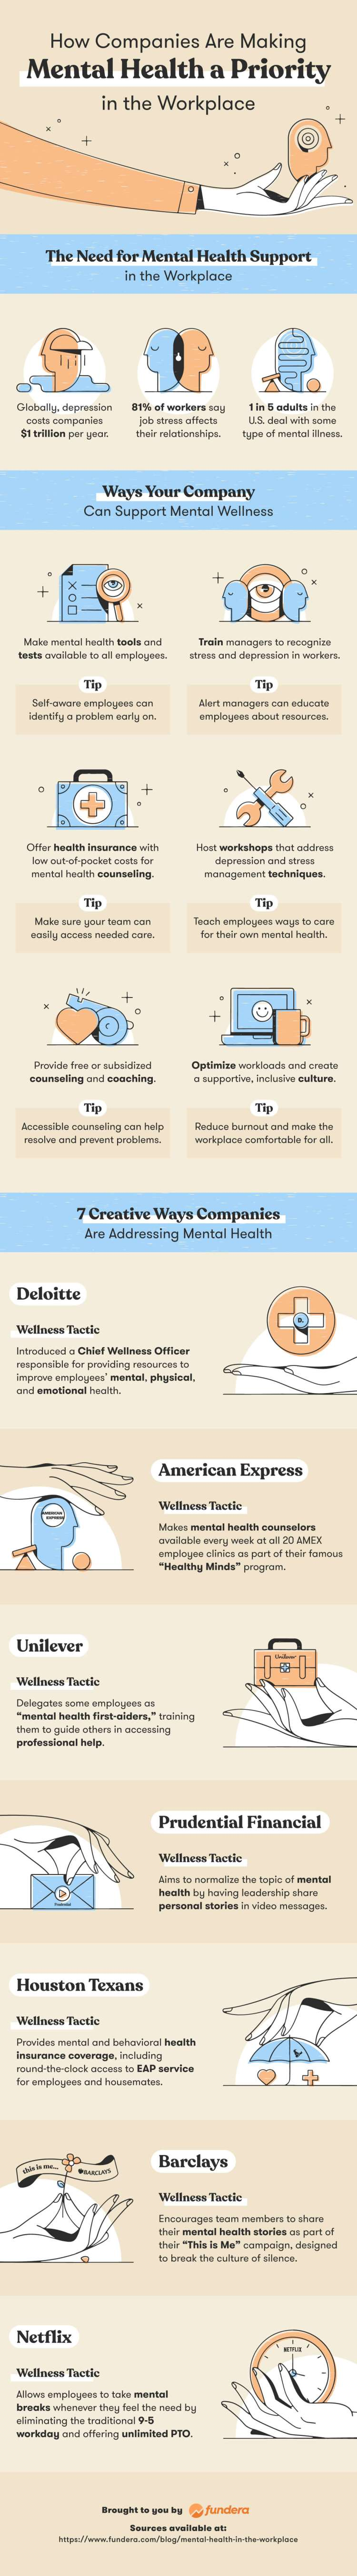 7 Powerful Ways to Support Mental Health in the Workplace